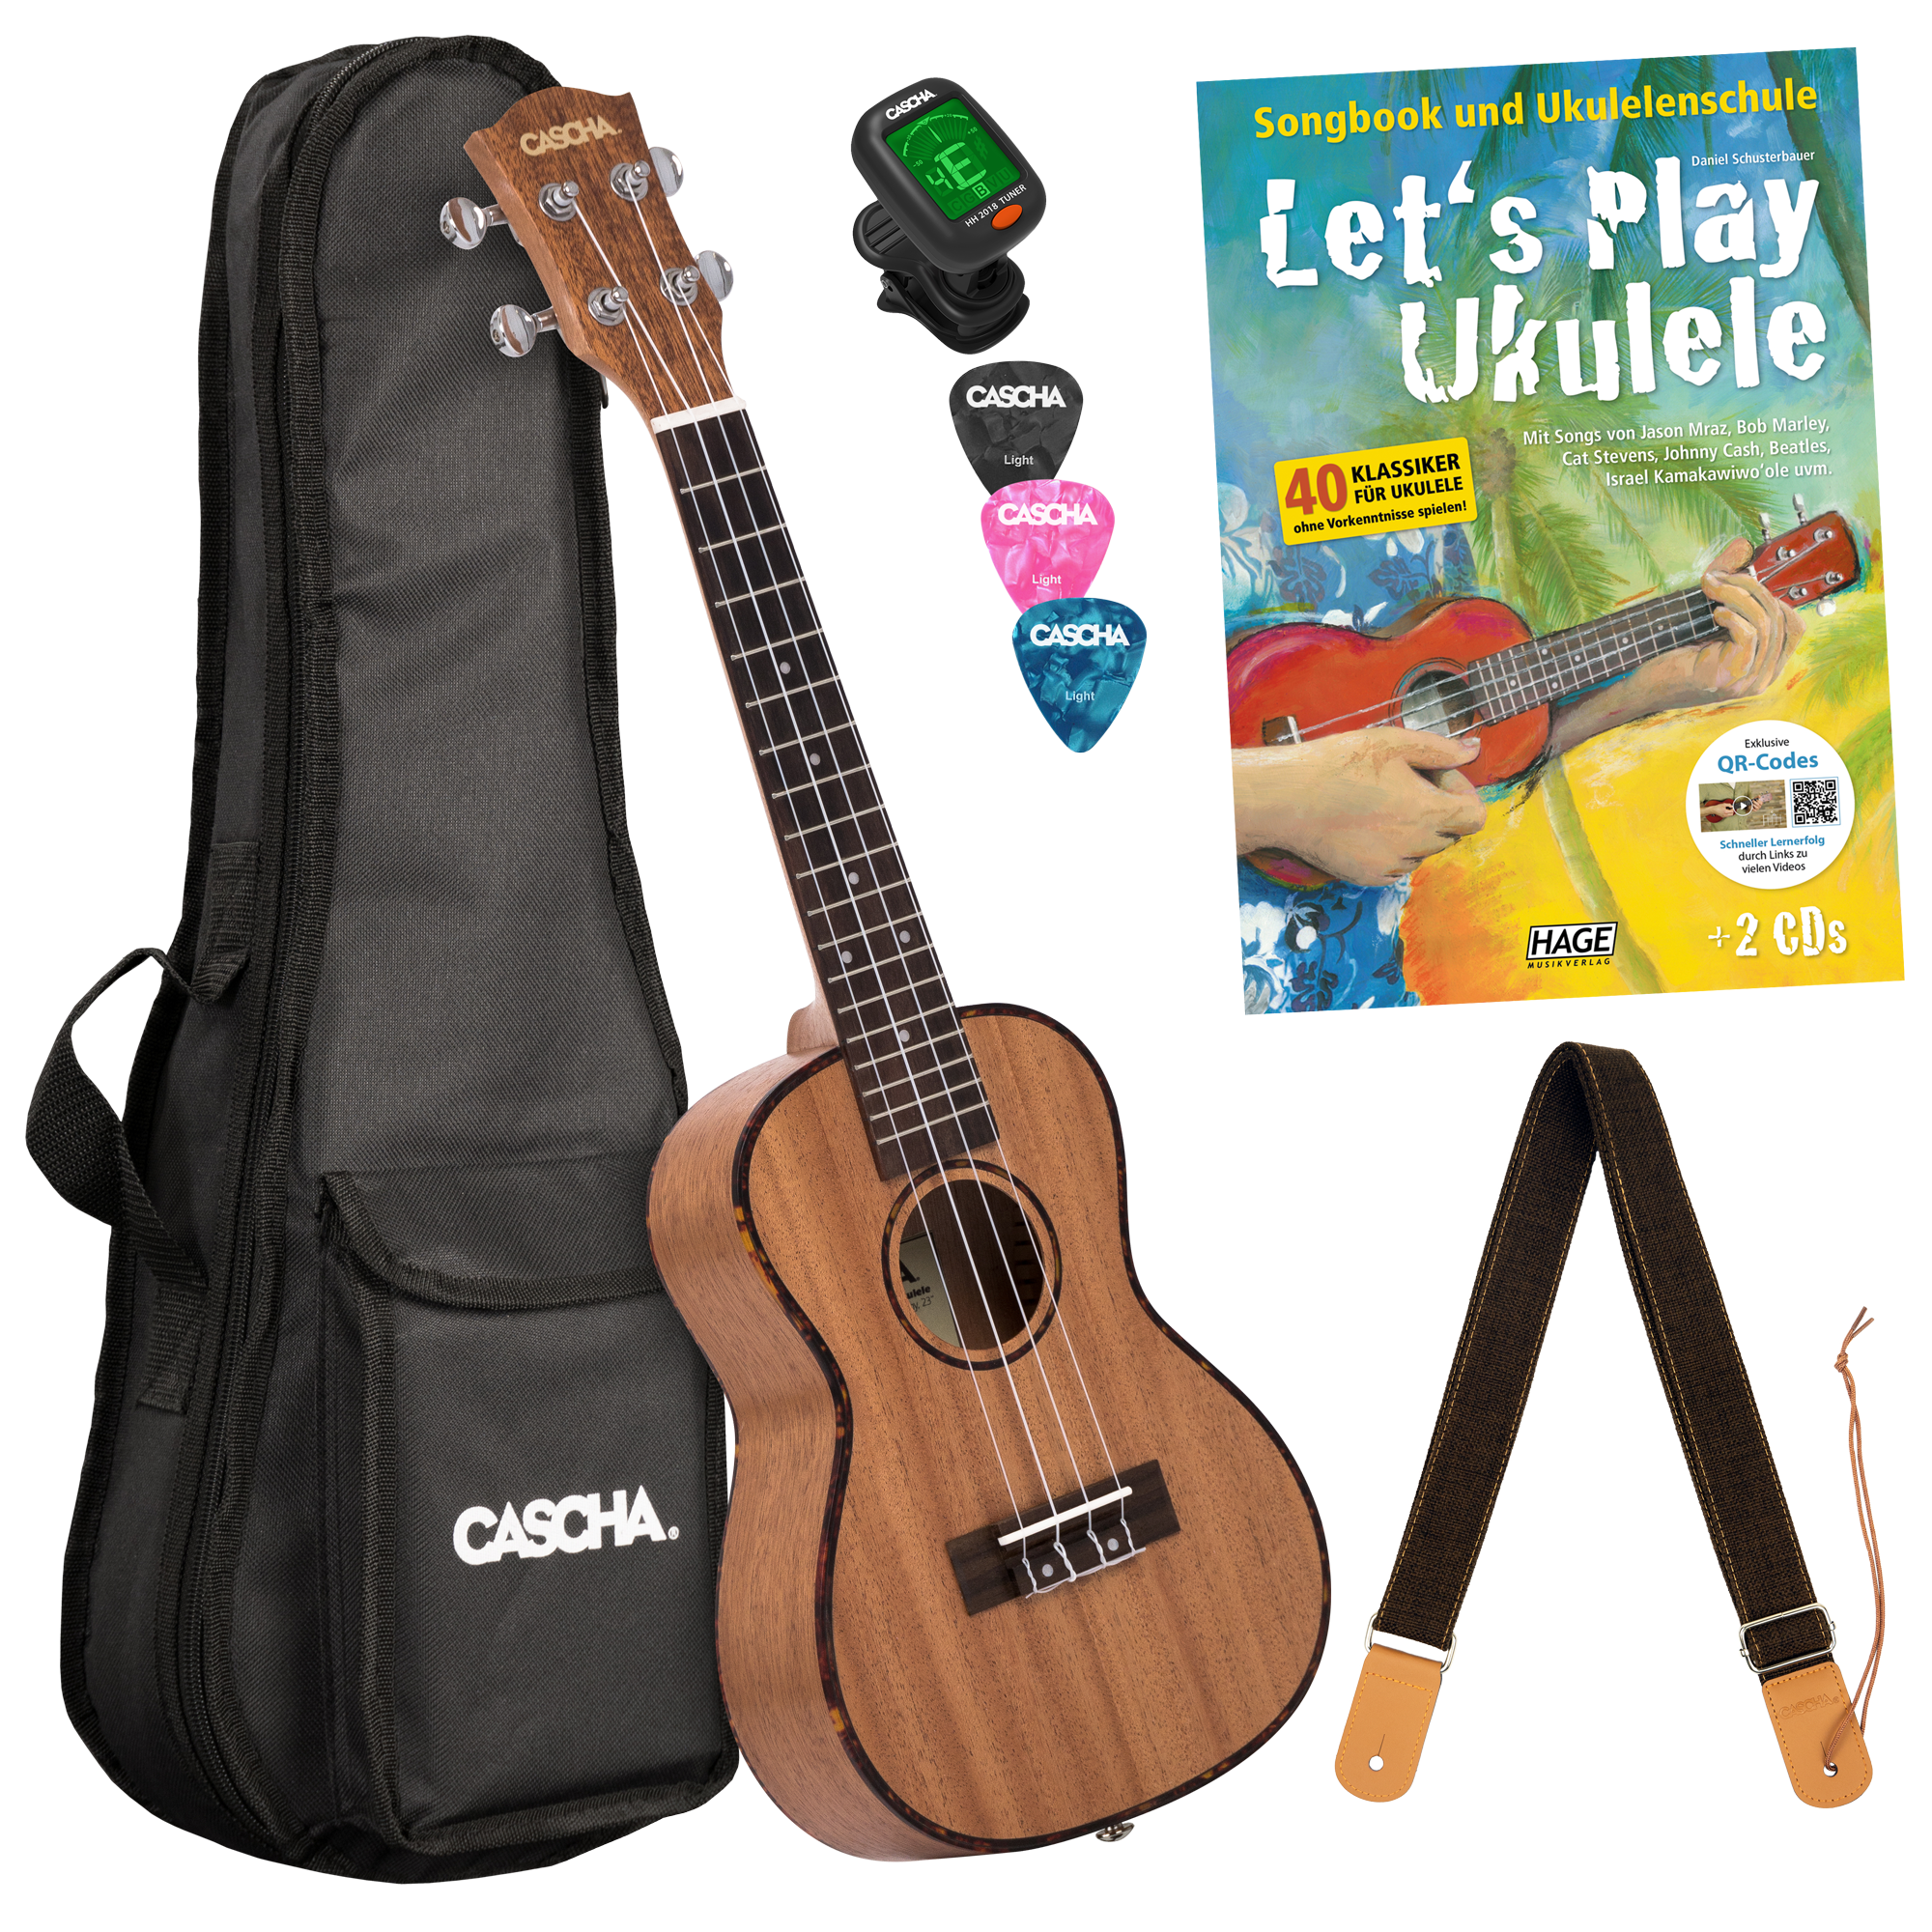 Let's Play Ukulele Einsteiger Set Konzert